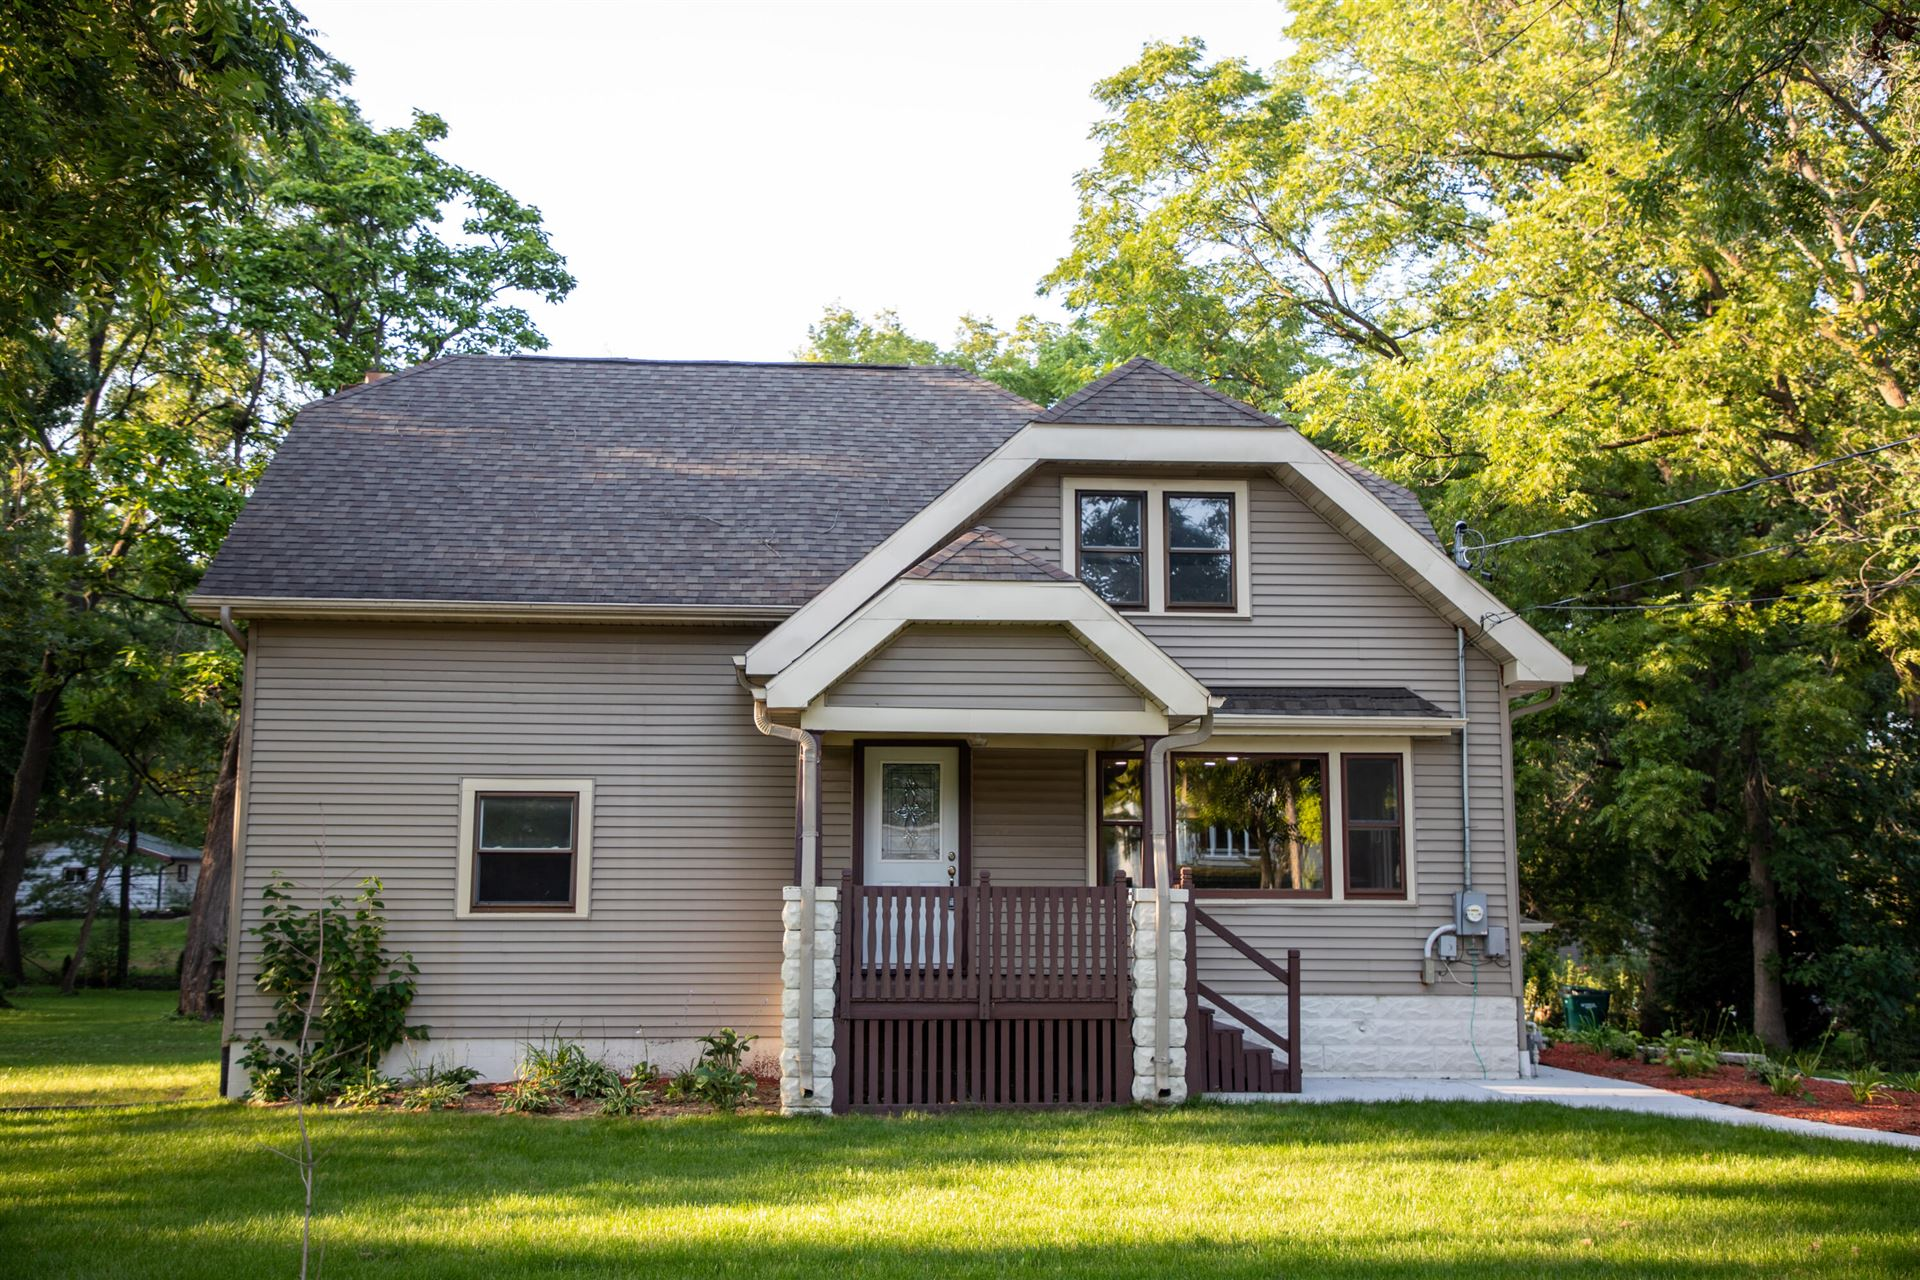 12506 W Forest Dr, New Berlin, WI 53151 - #: 1736139